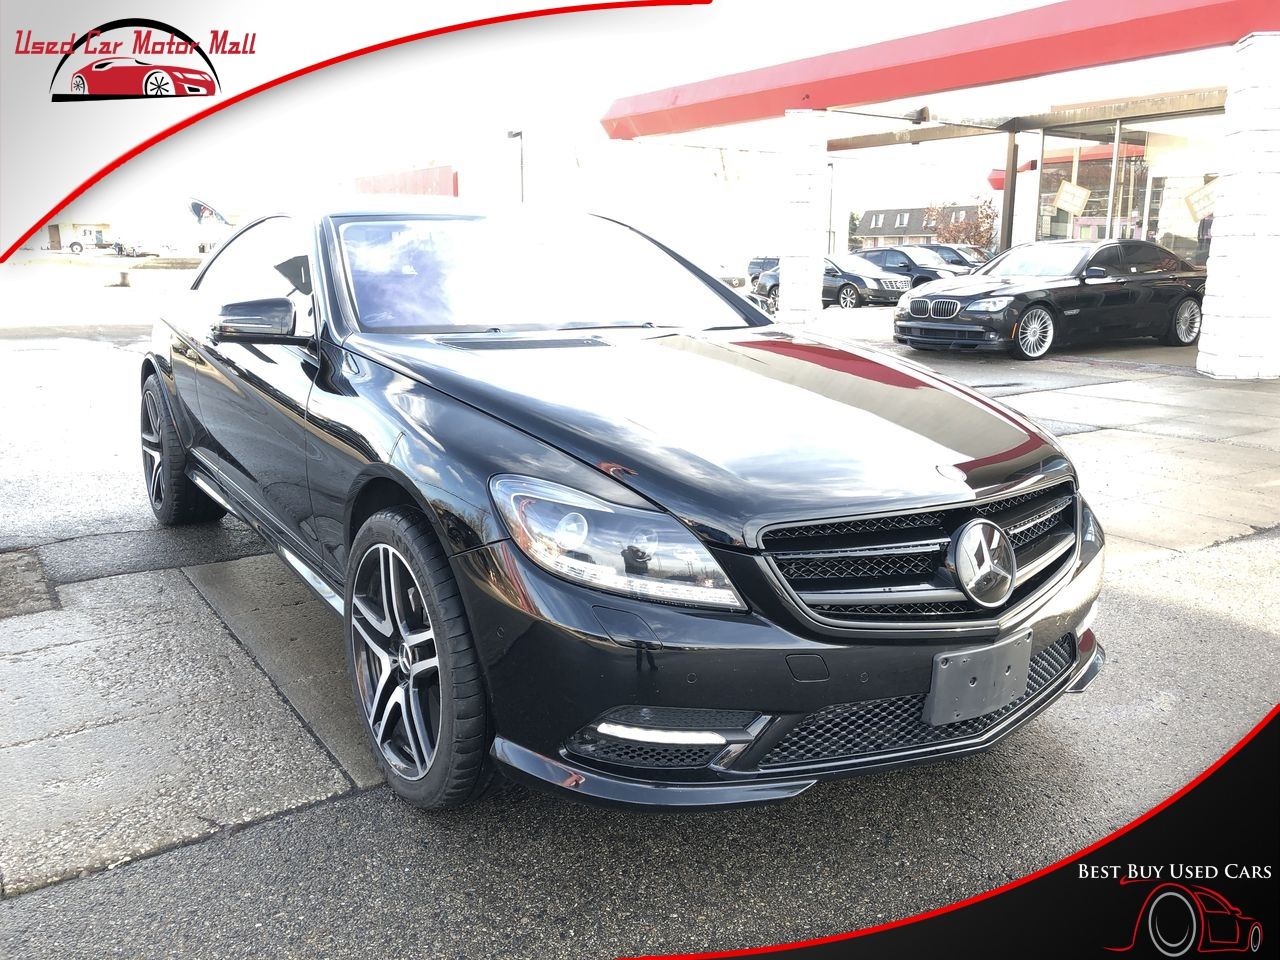 2013 Honda Accord Coupe EX-L V6, 000853, Photo 1